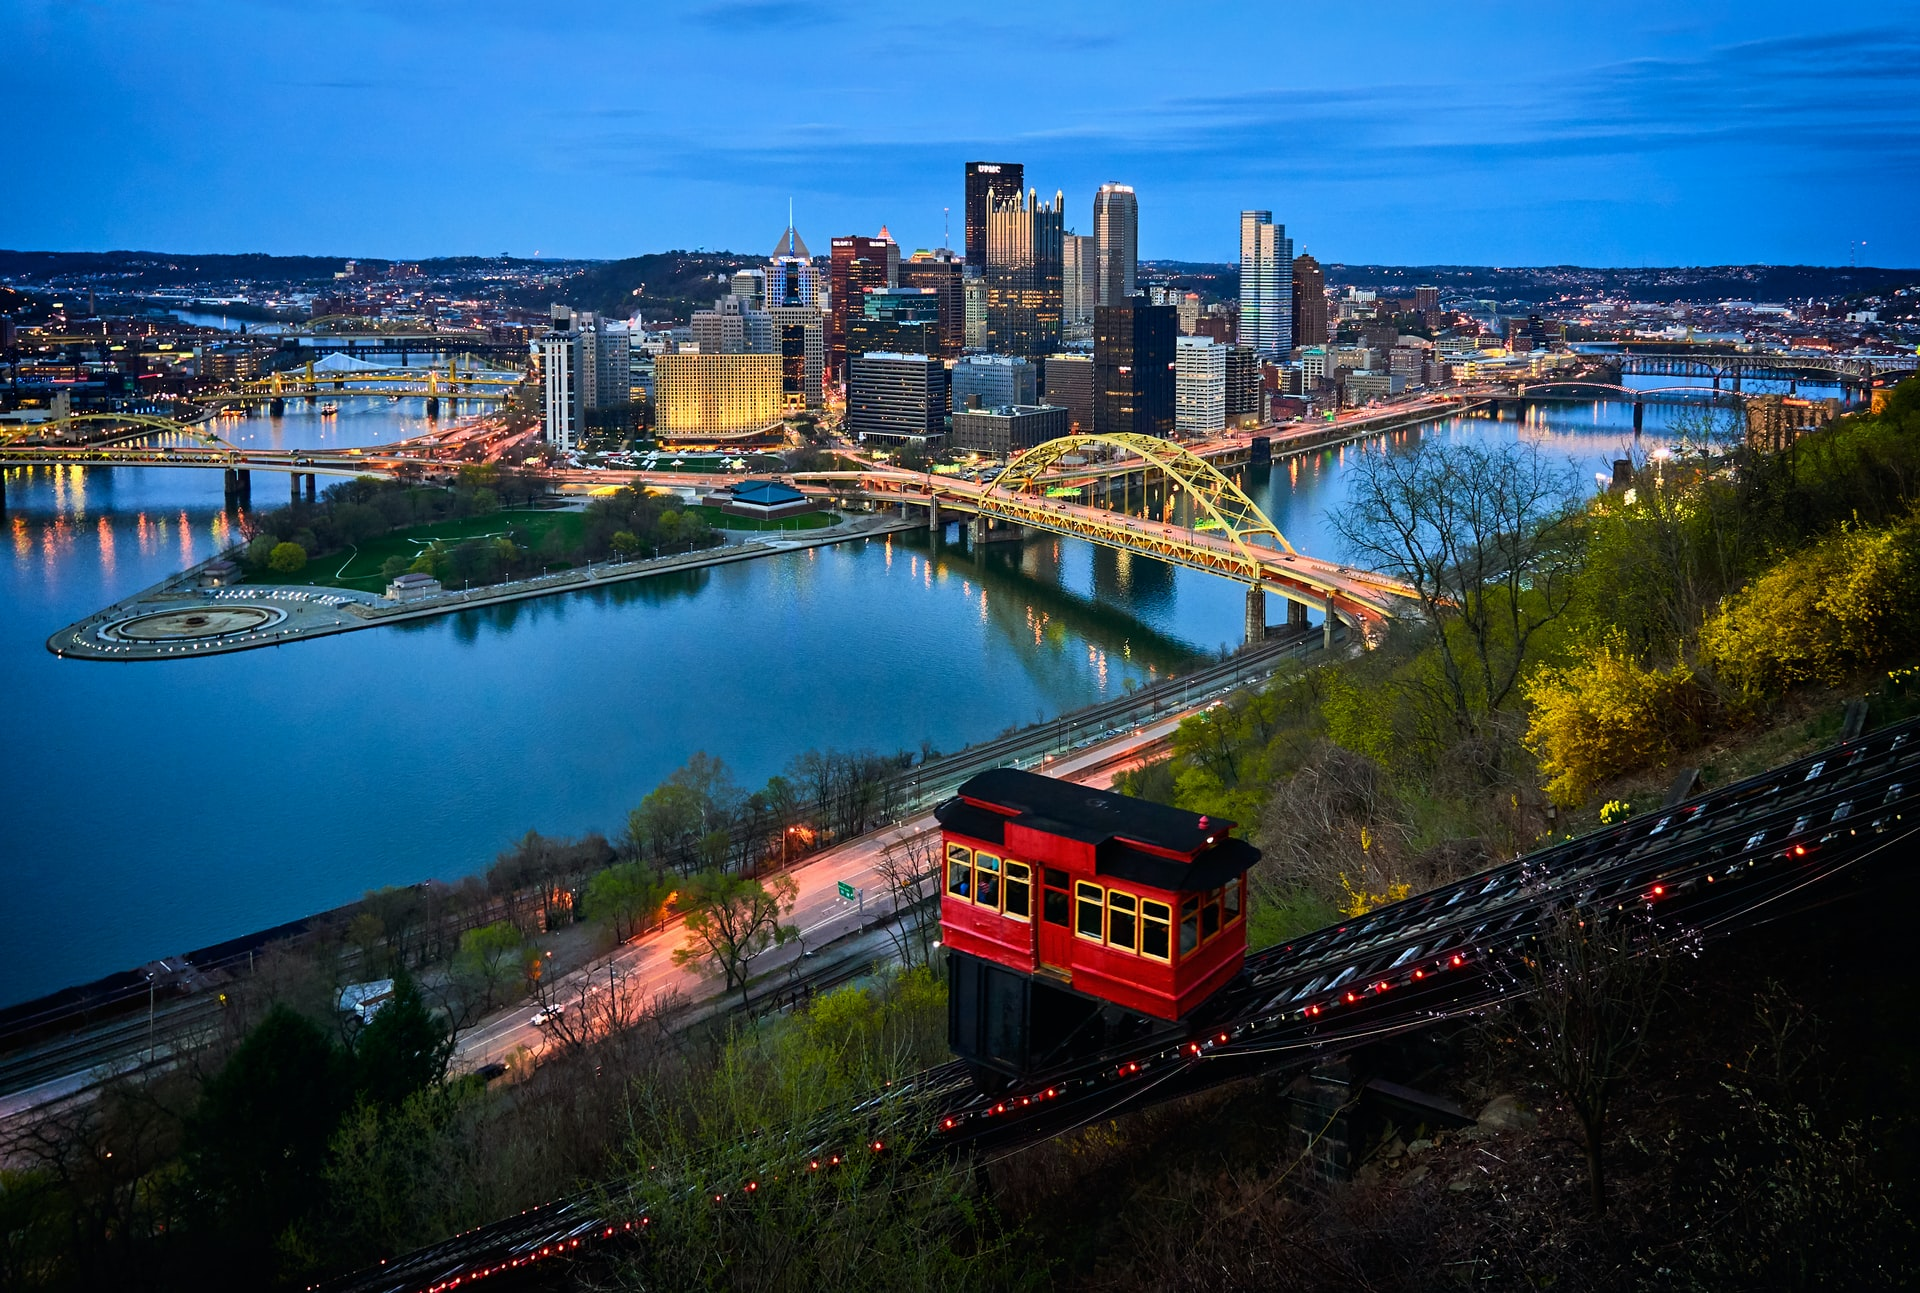 Pittsburgh is also taking a stand on fossil fuels